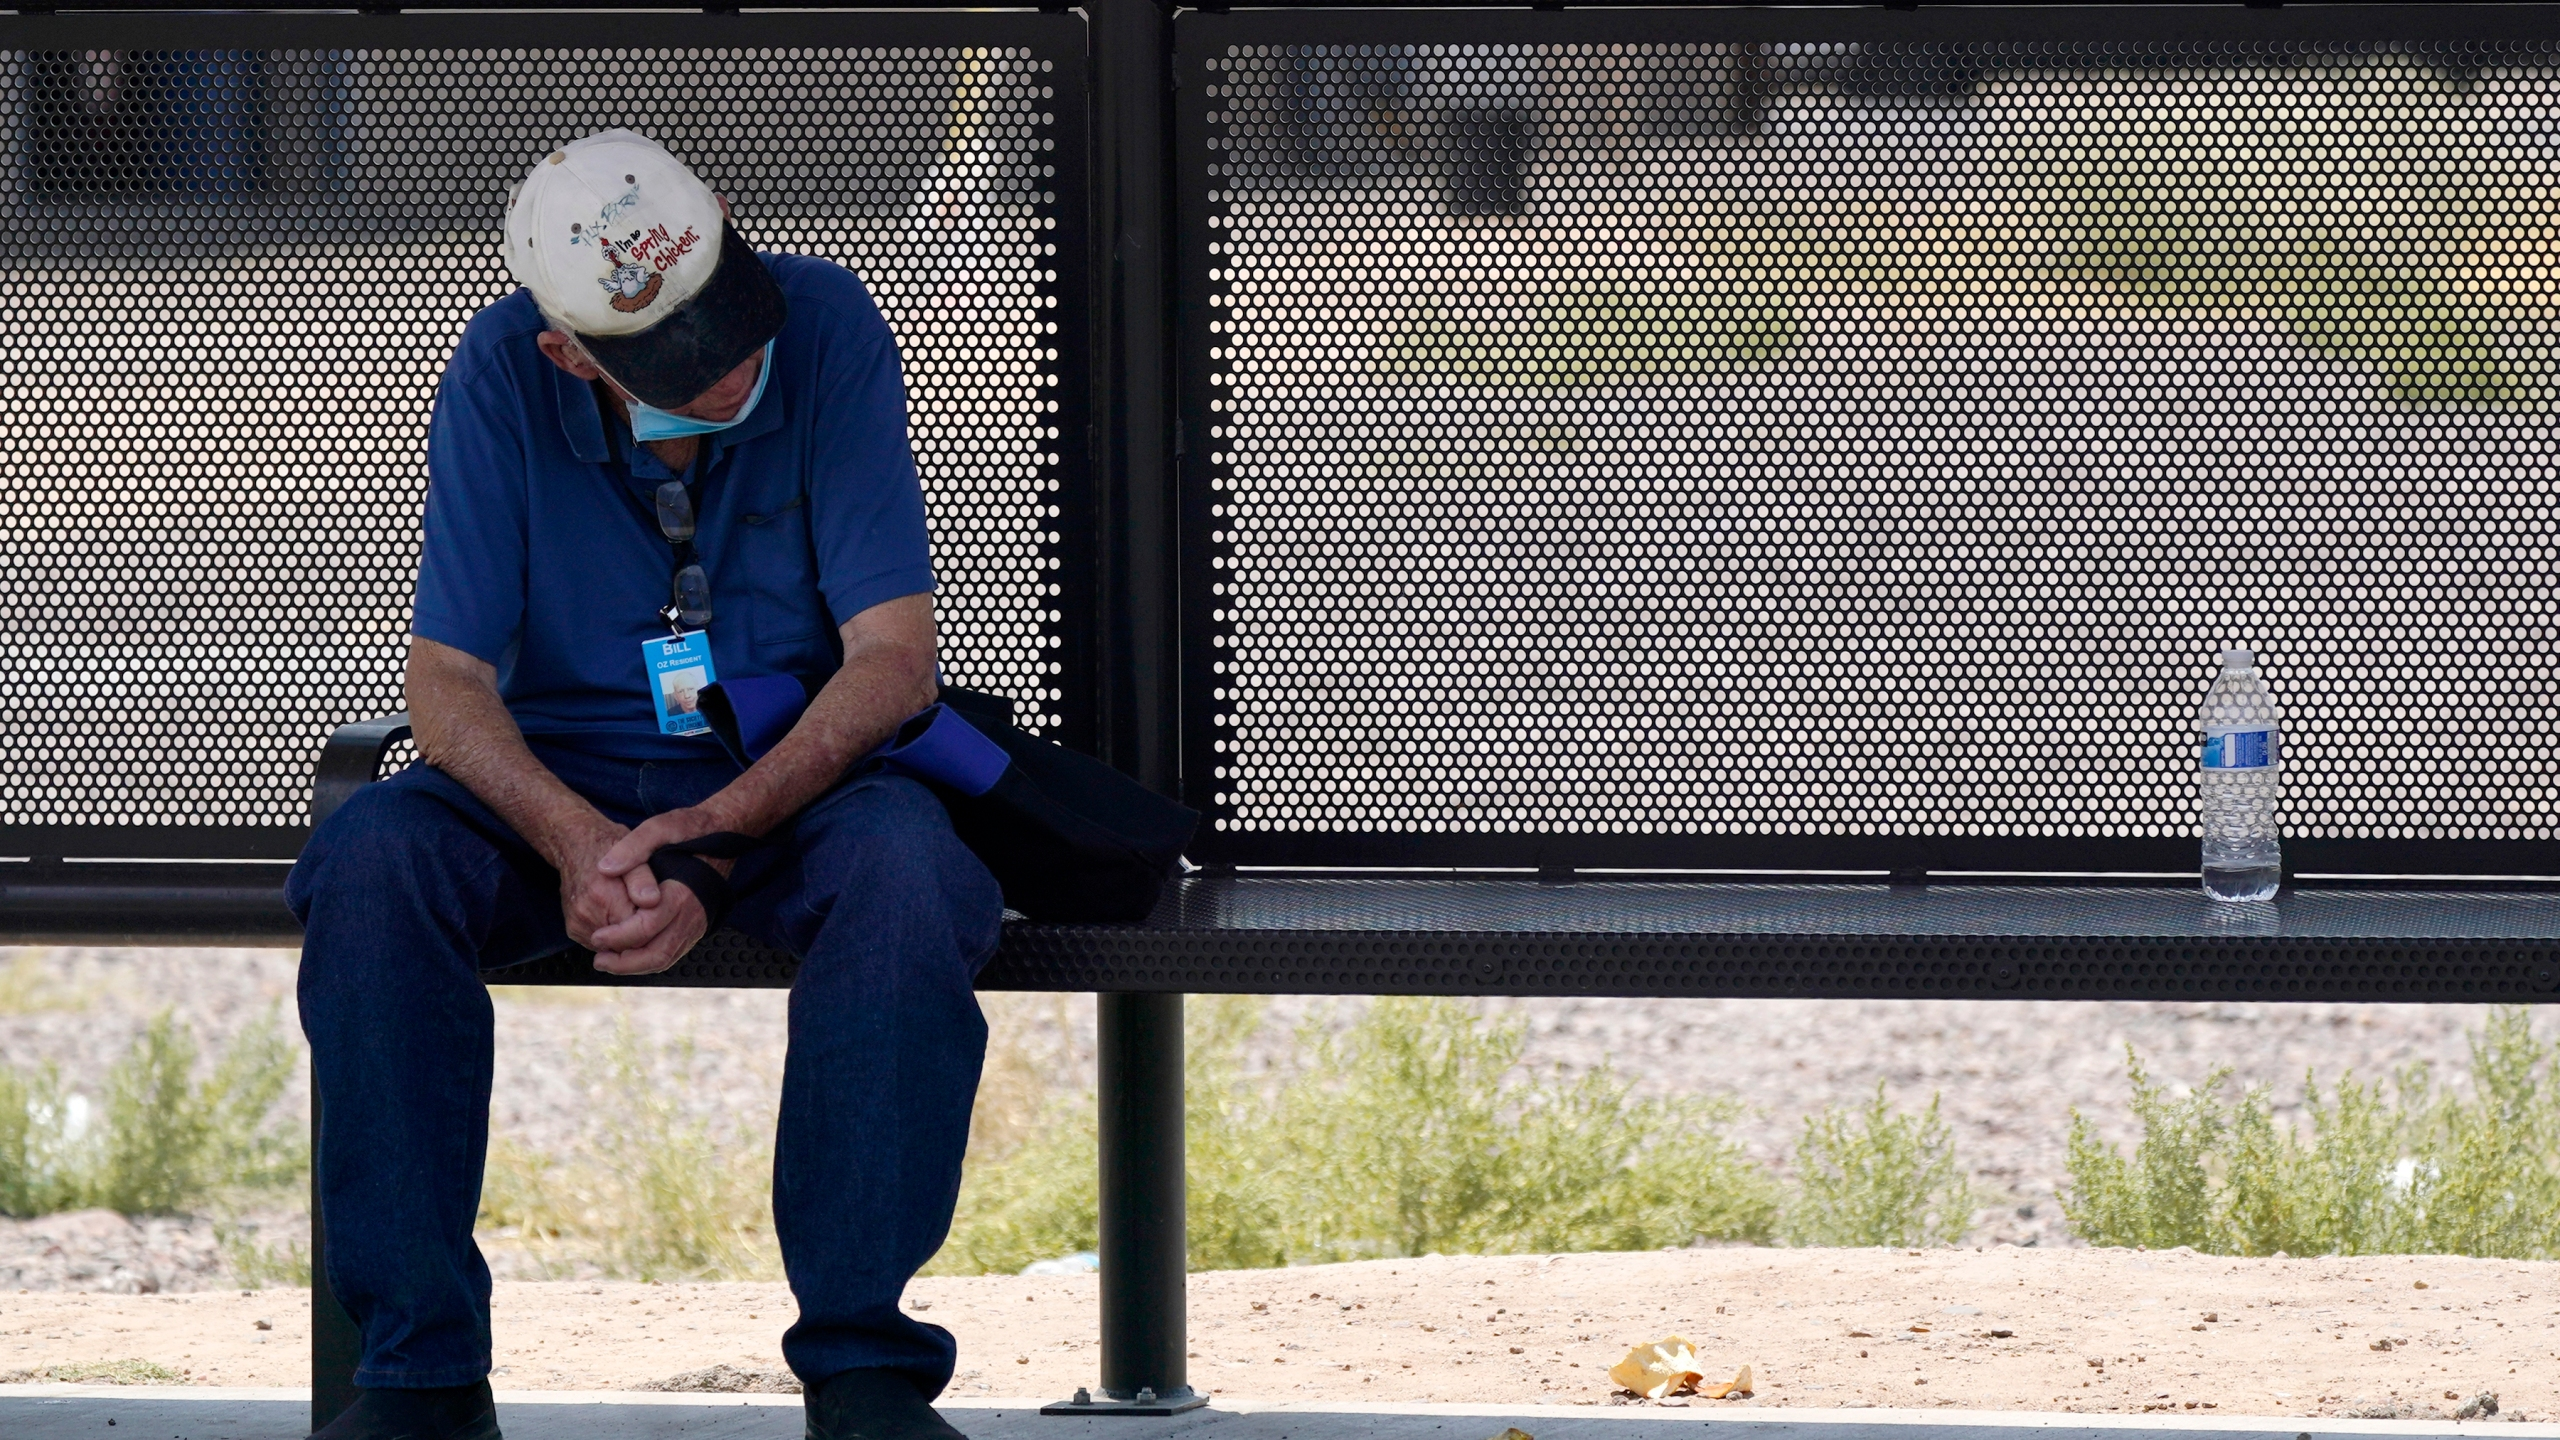 A person waits for a bus in the shade as the heat wave in the Western states continues on June 17, 2021, in Phoenix. (AP Photo/Ross D. Franklin)